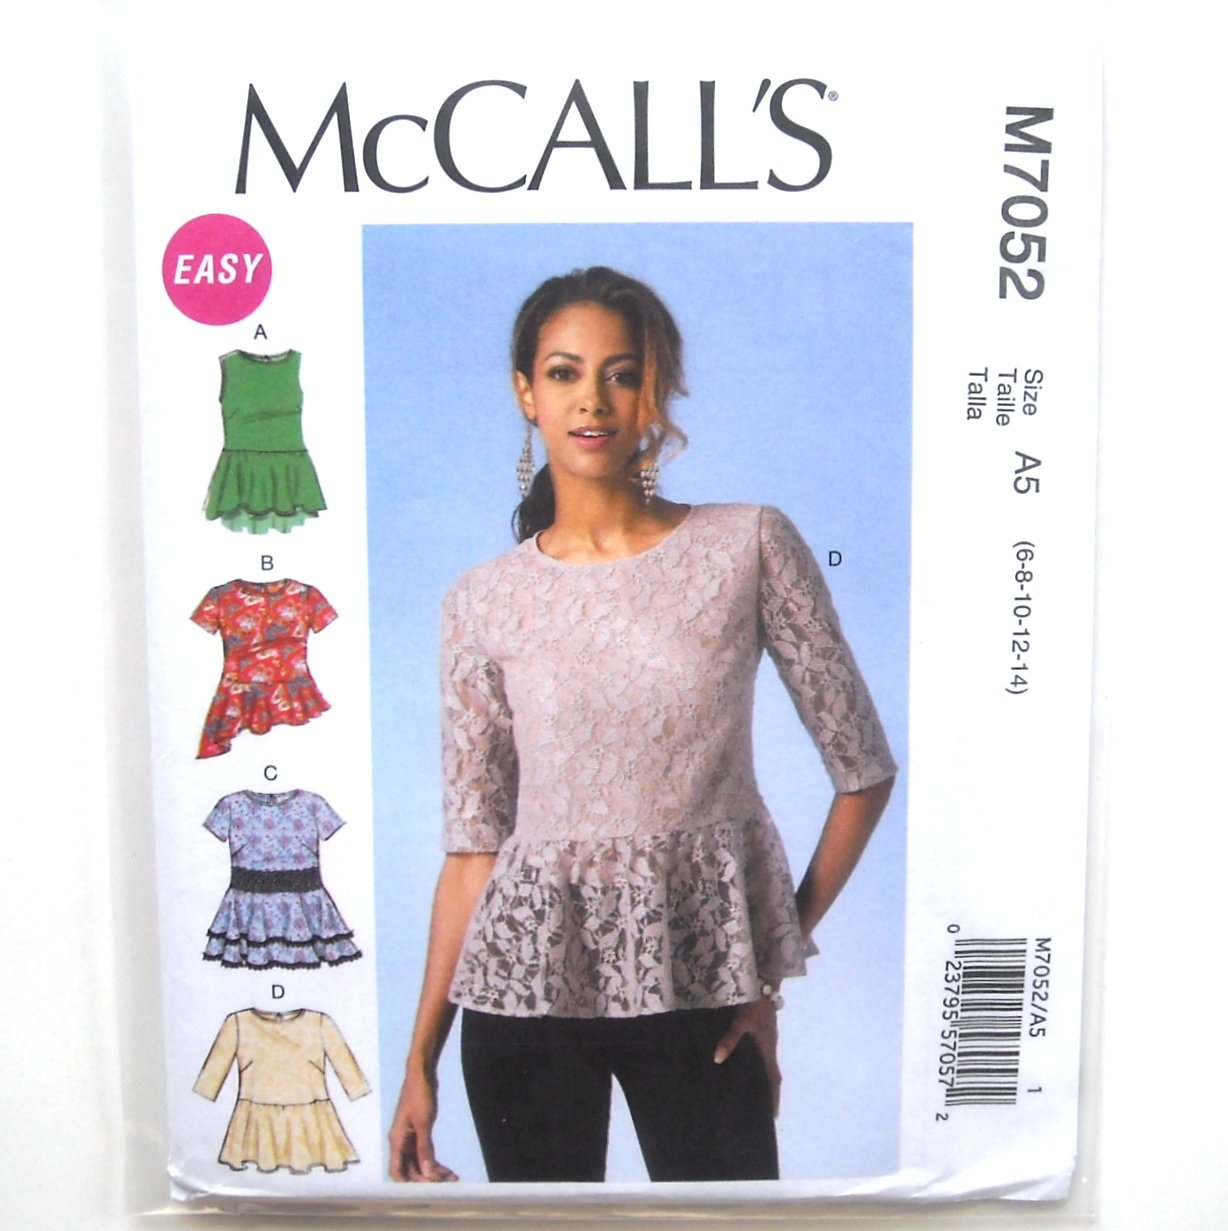 Misses Pullover Tops 6 8 10 12 14 Easy McCalls Sewing Pattern M7052